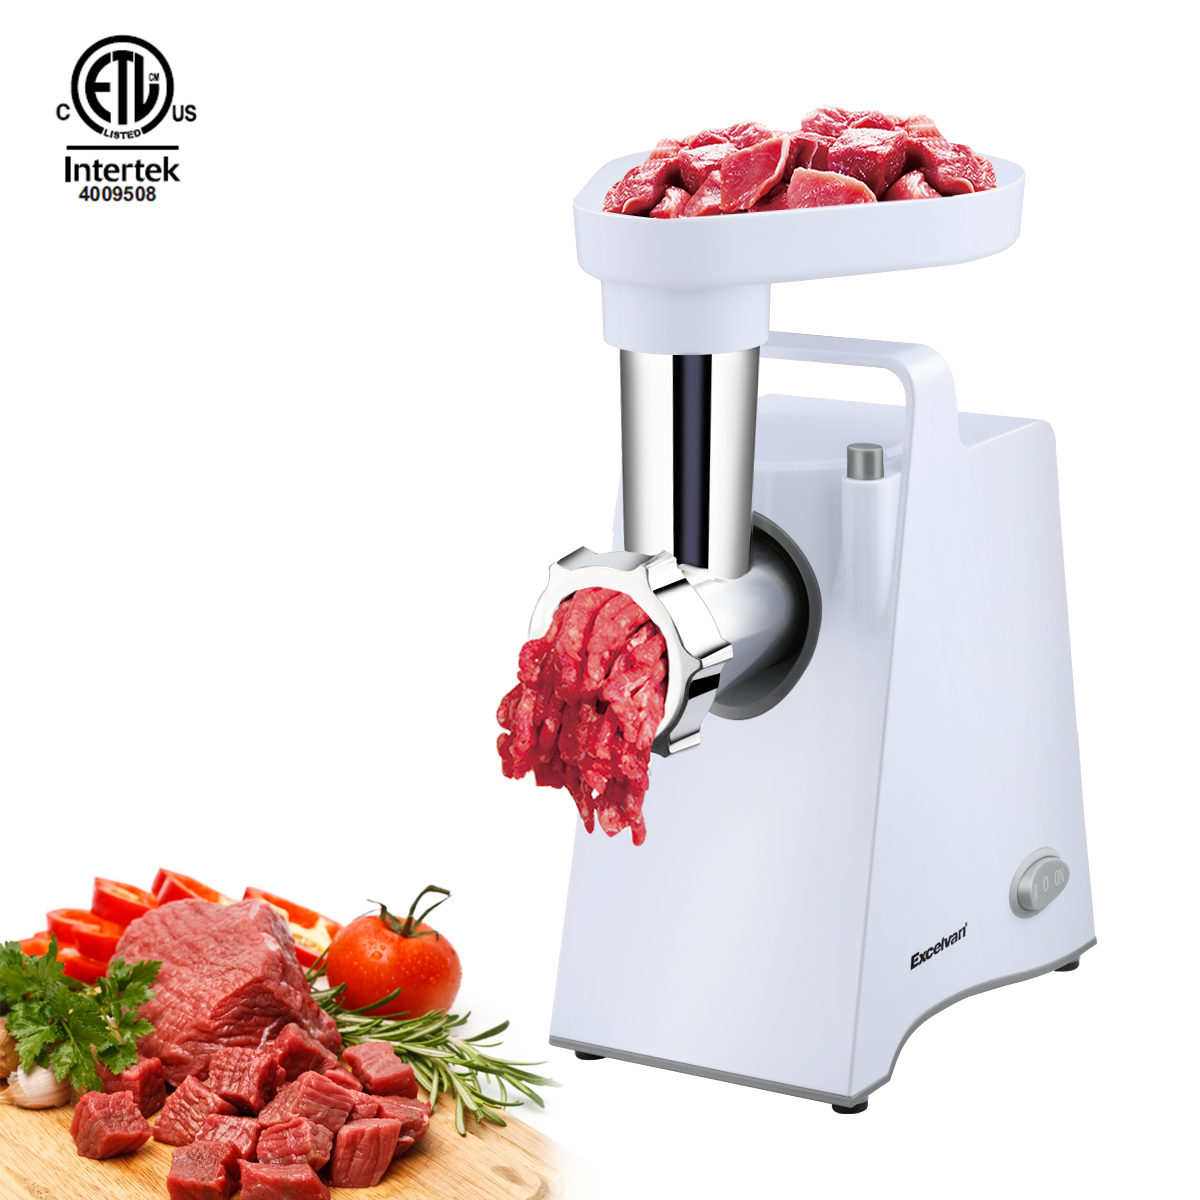 Excelvan Meat Grinder Electric Stainless Steel Sausage Maker, Meat Mincer Sausage Stuffer with Grinding Plates for Home Use (White)